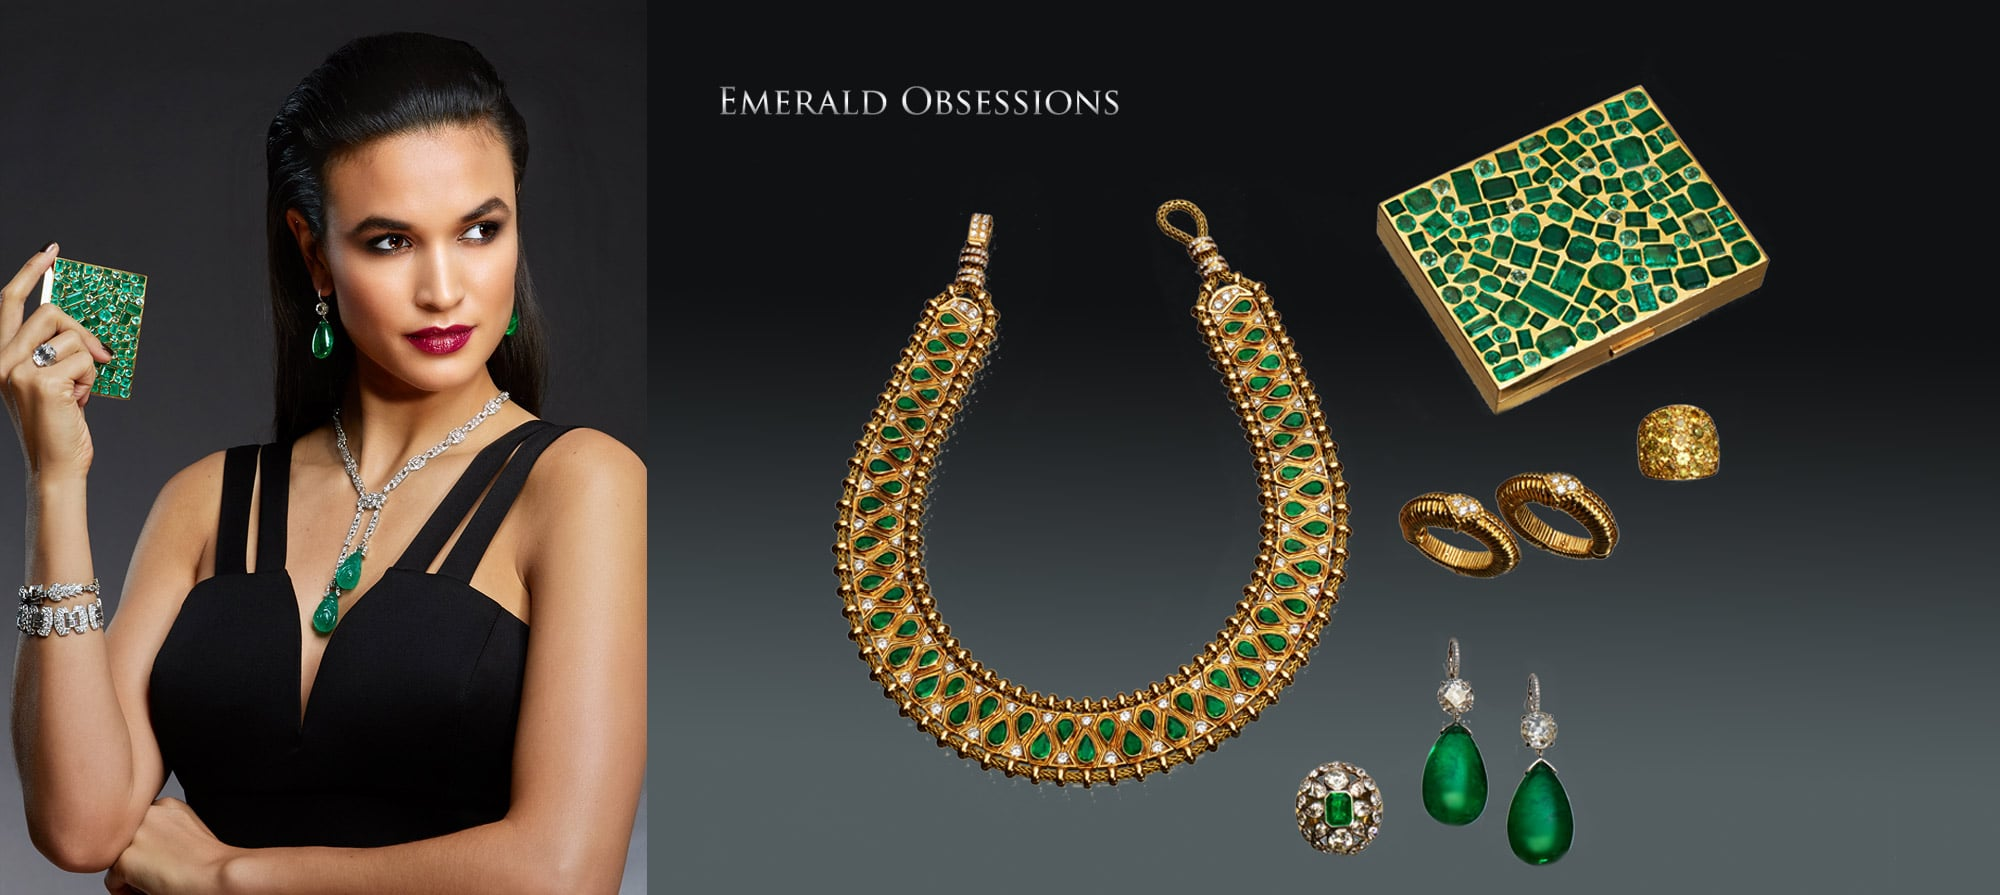 """Emerald and Diamond """"Hindu"""" Necklace by Rene Boivin, Paris. Circa 1950, Emerald Compact by Suzanne Belperron. Circa 1935, Citrine and Yellow Sapphire Ring by Rene Boivin, Paris Gold and Diamond Earrings by Van Cleef & Arpels. Circa 1960, Emerald and Diamond Pendent Earrings, Emerald and Diamond Ring by Rene Boivin, Paris"""